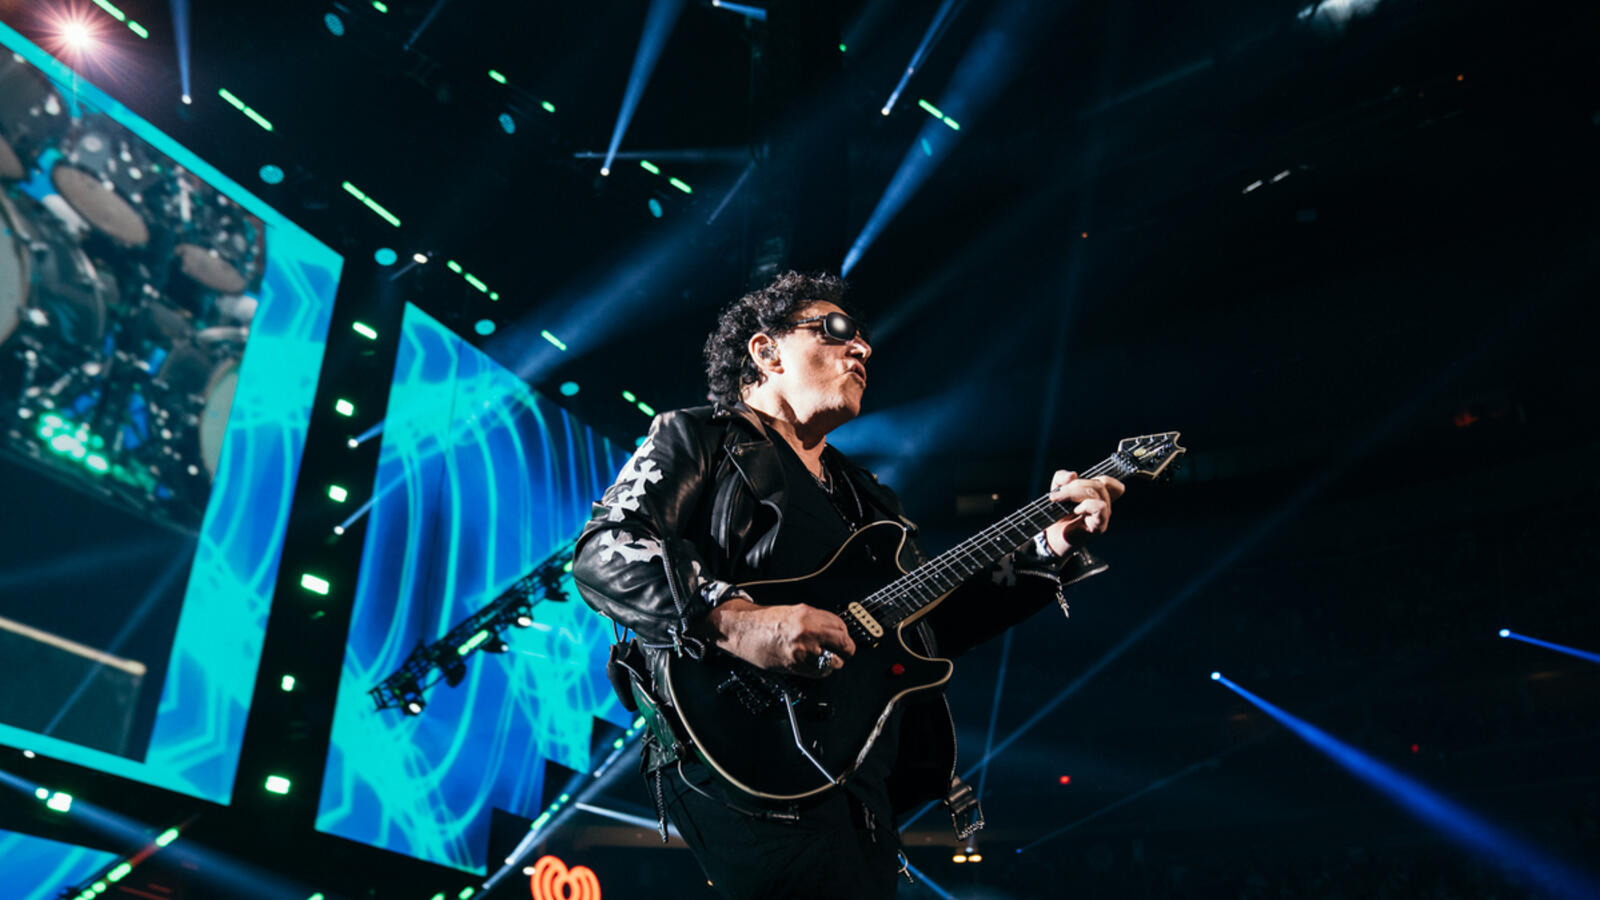 Journey Closes Out iHeartRadio Music Festival With Epic Performance